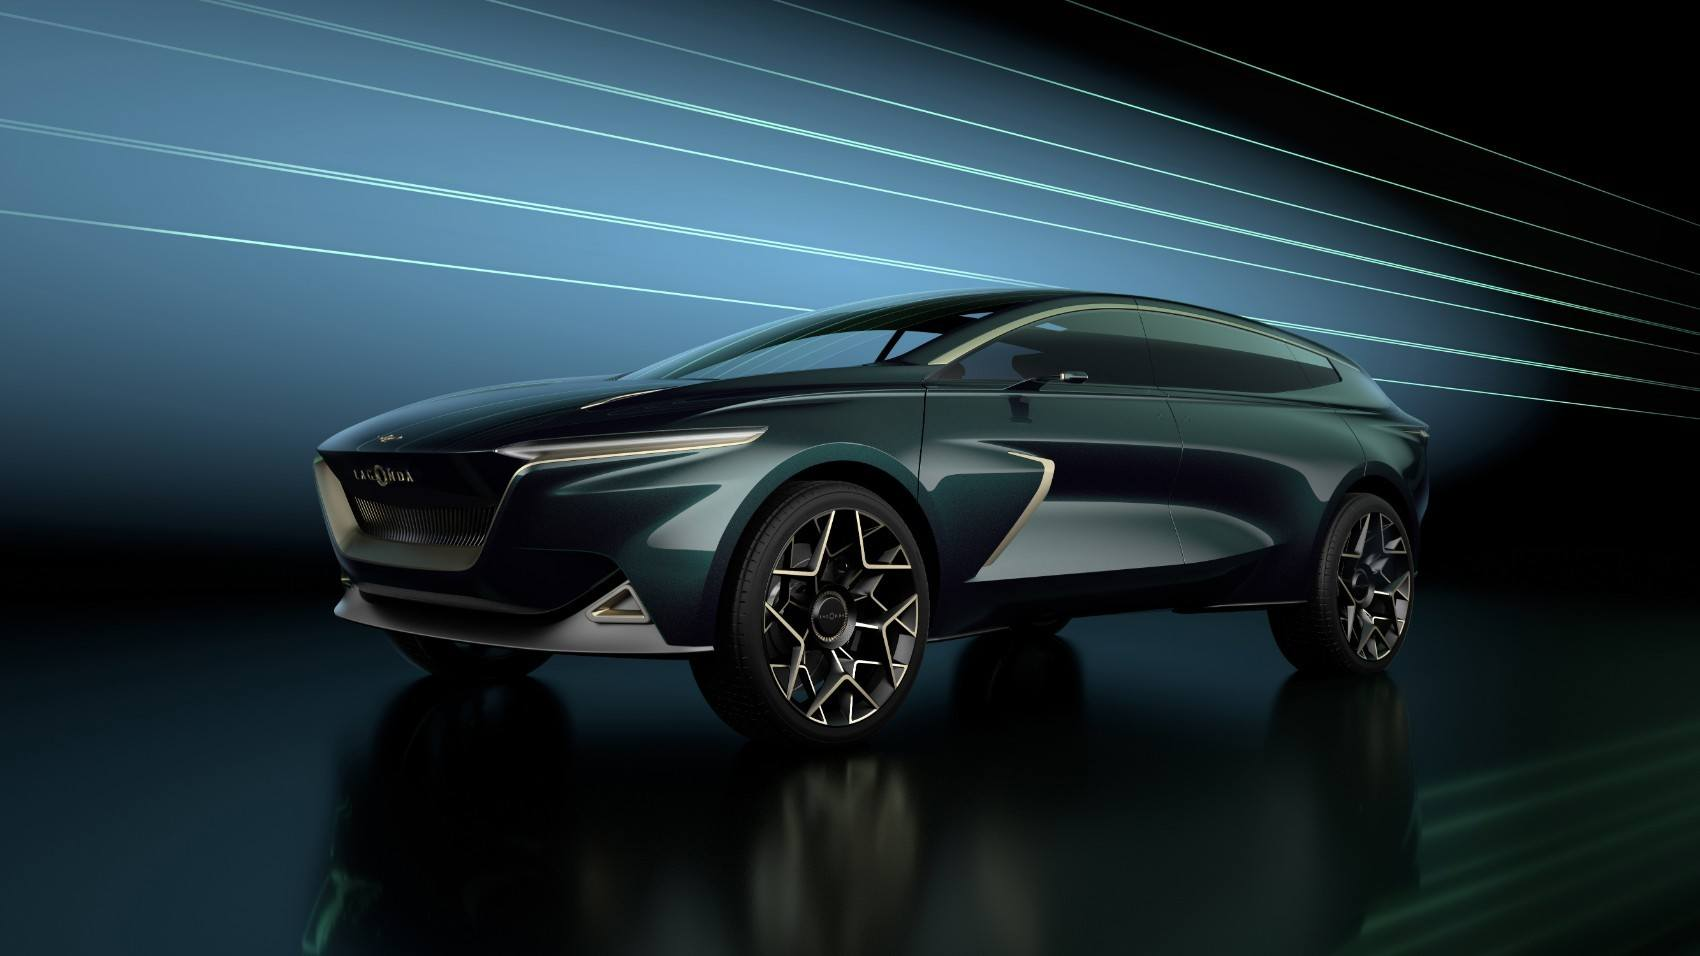 Lagonda All-Terrain Concept: The EV With The Floating Key